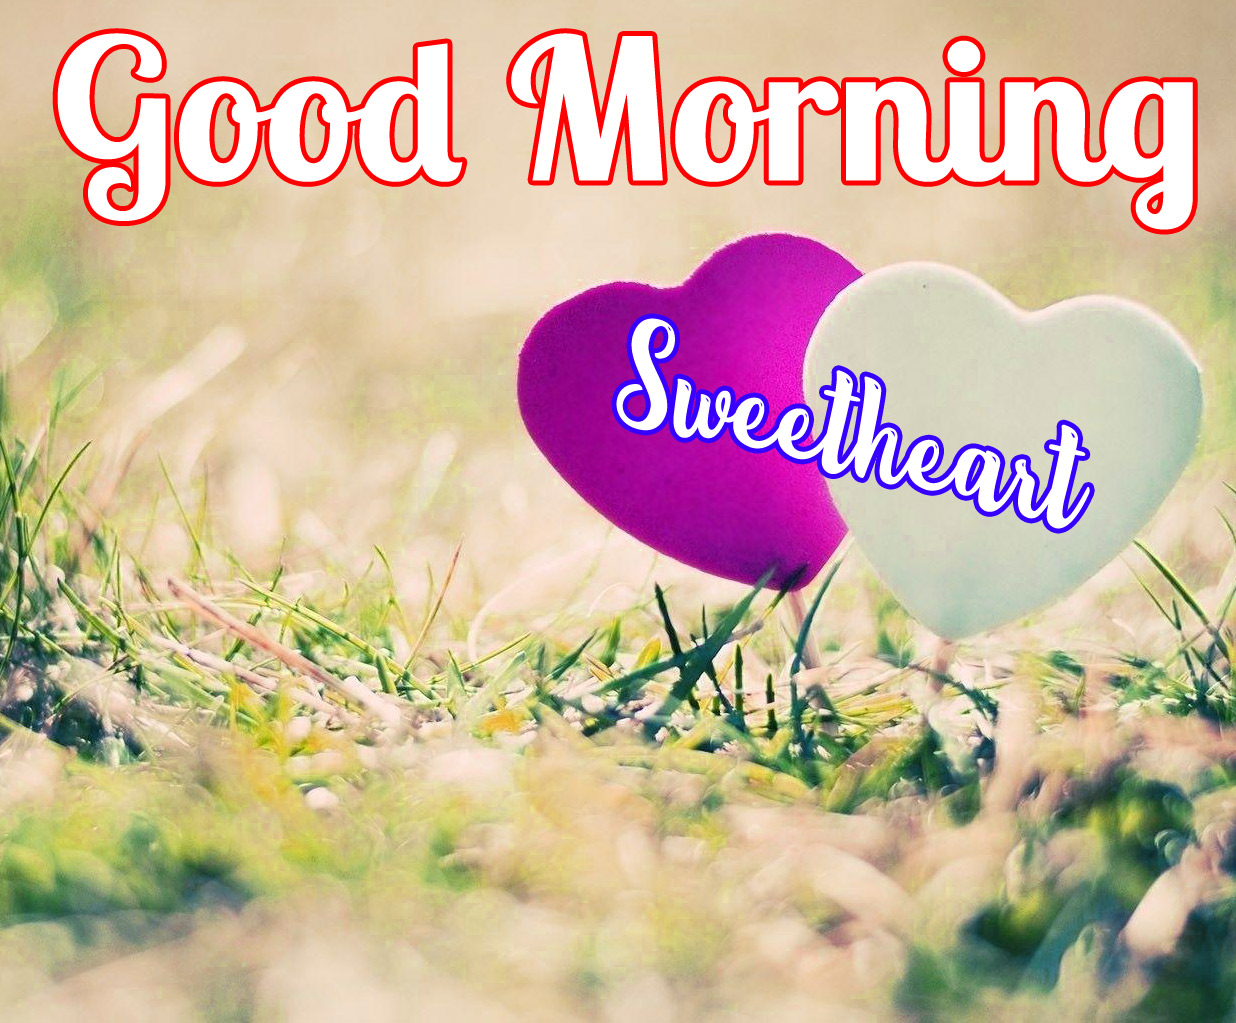 Free Lover good morning Images Pics Download